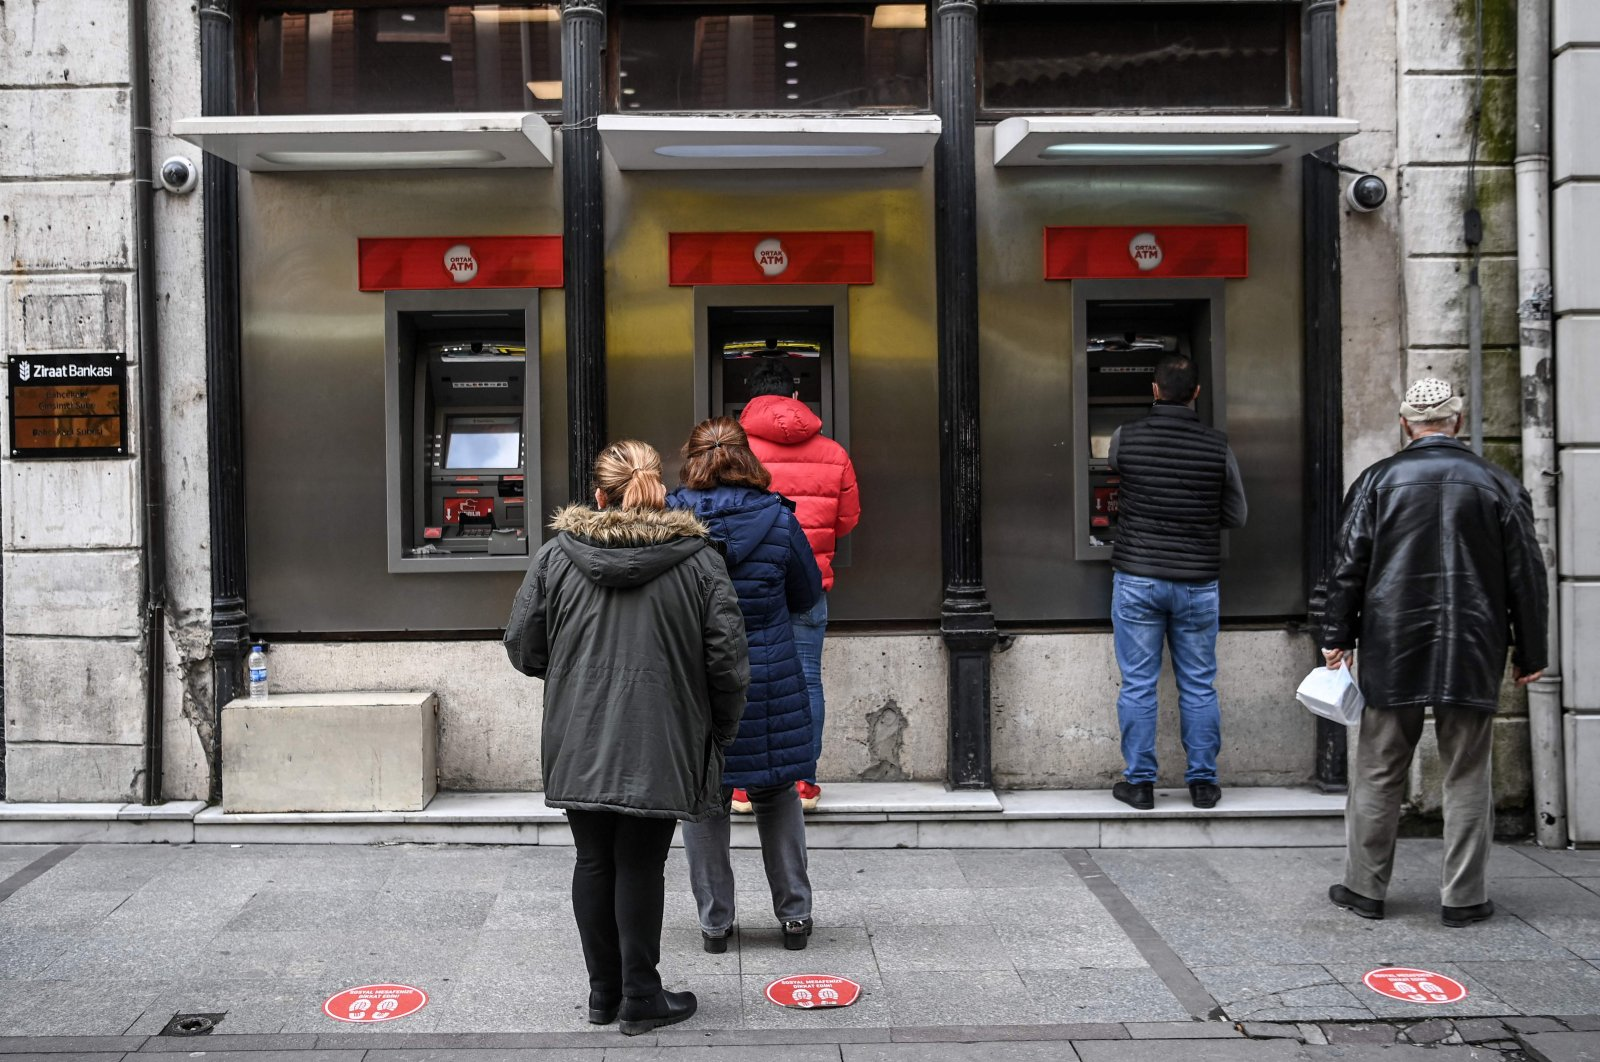 Customers wait in line to use ATMs of a Turkish bank near the Eminönü neighborhood in Istanbul, Turkey, March 22, 2021. (AFP Photo)